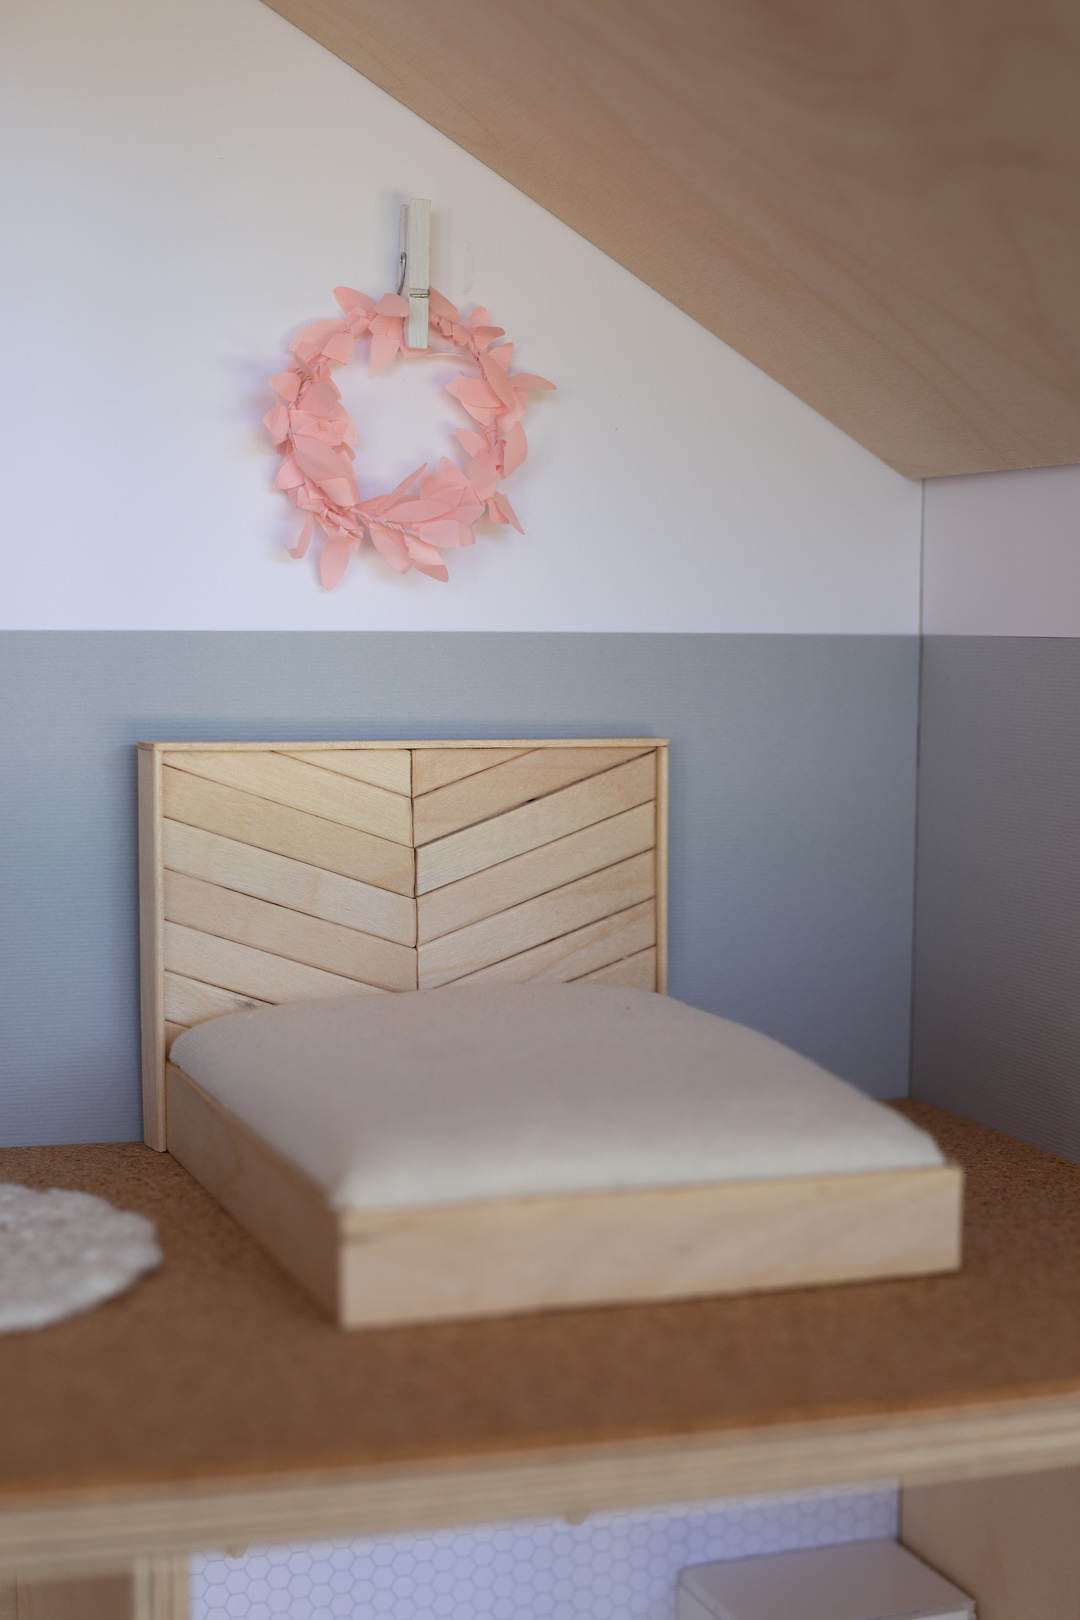 DIY Dollhouse bed made from popsicle sticks 1-12 scale